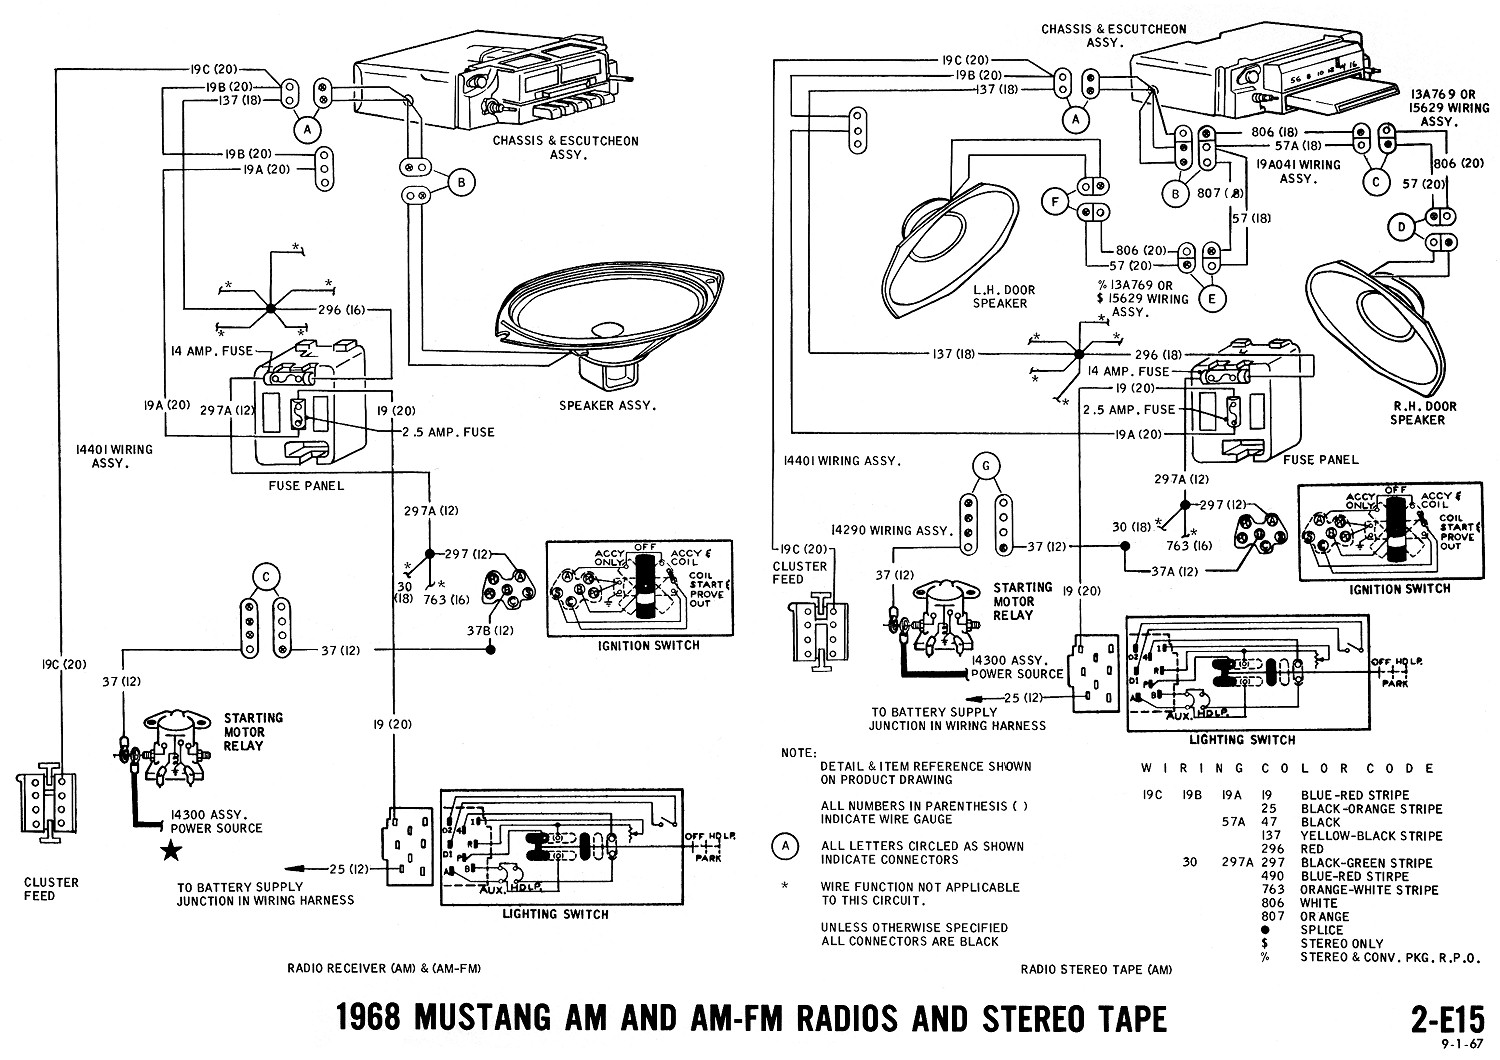 1968 Mustang Wiring Diagrams on 1965 mustang radio wiring diagram